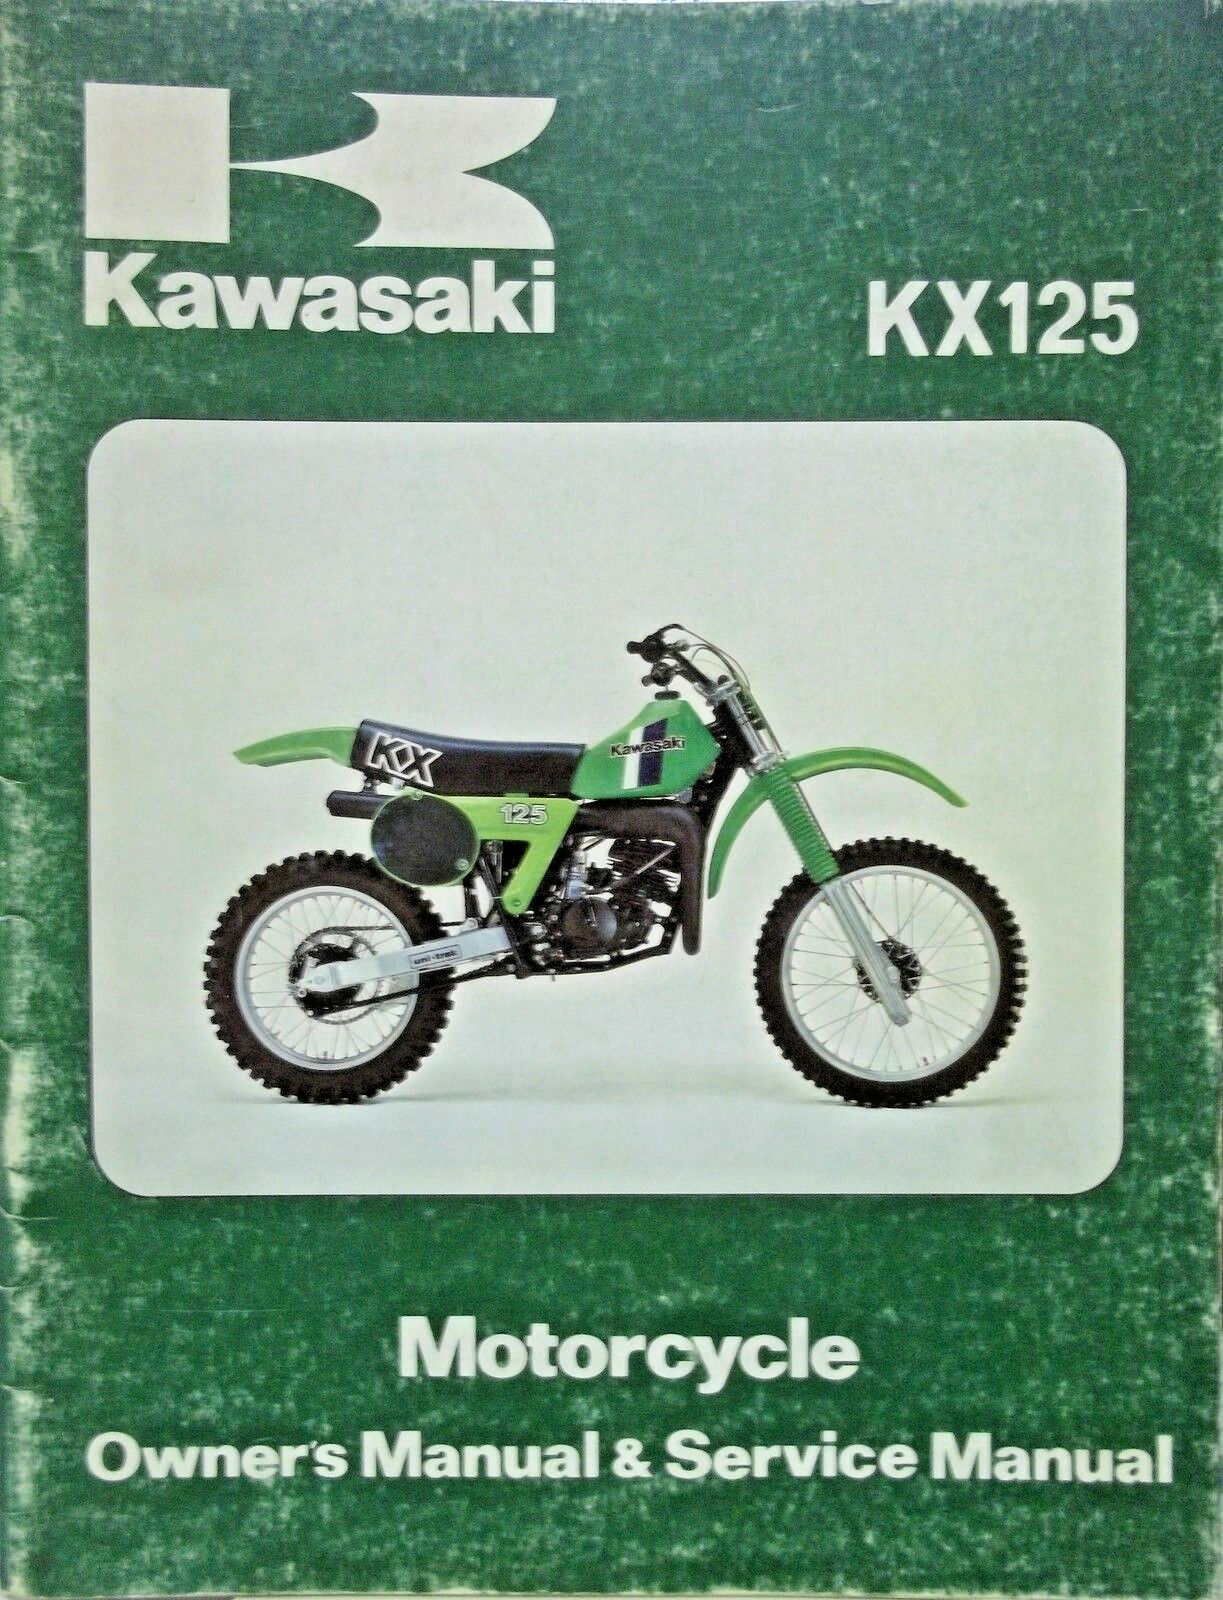 Kawasaki 1980 KX125 KX 125-A6 OWNER SERVICE MANUAL 1 of 1Only 3 available  ...